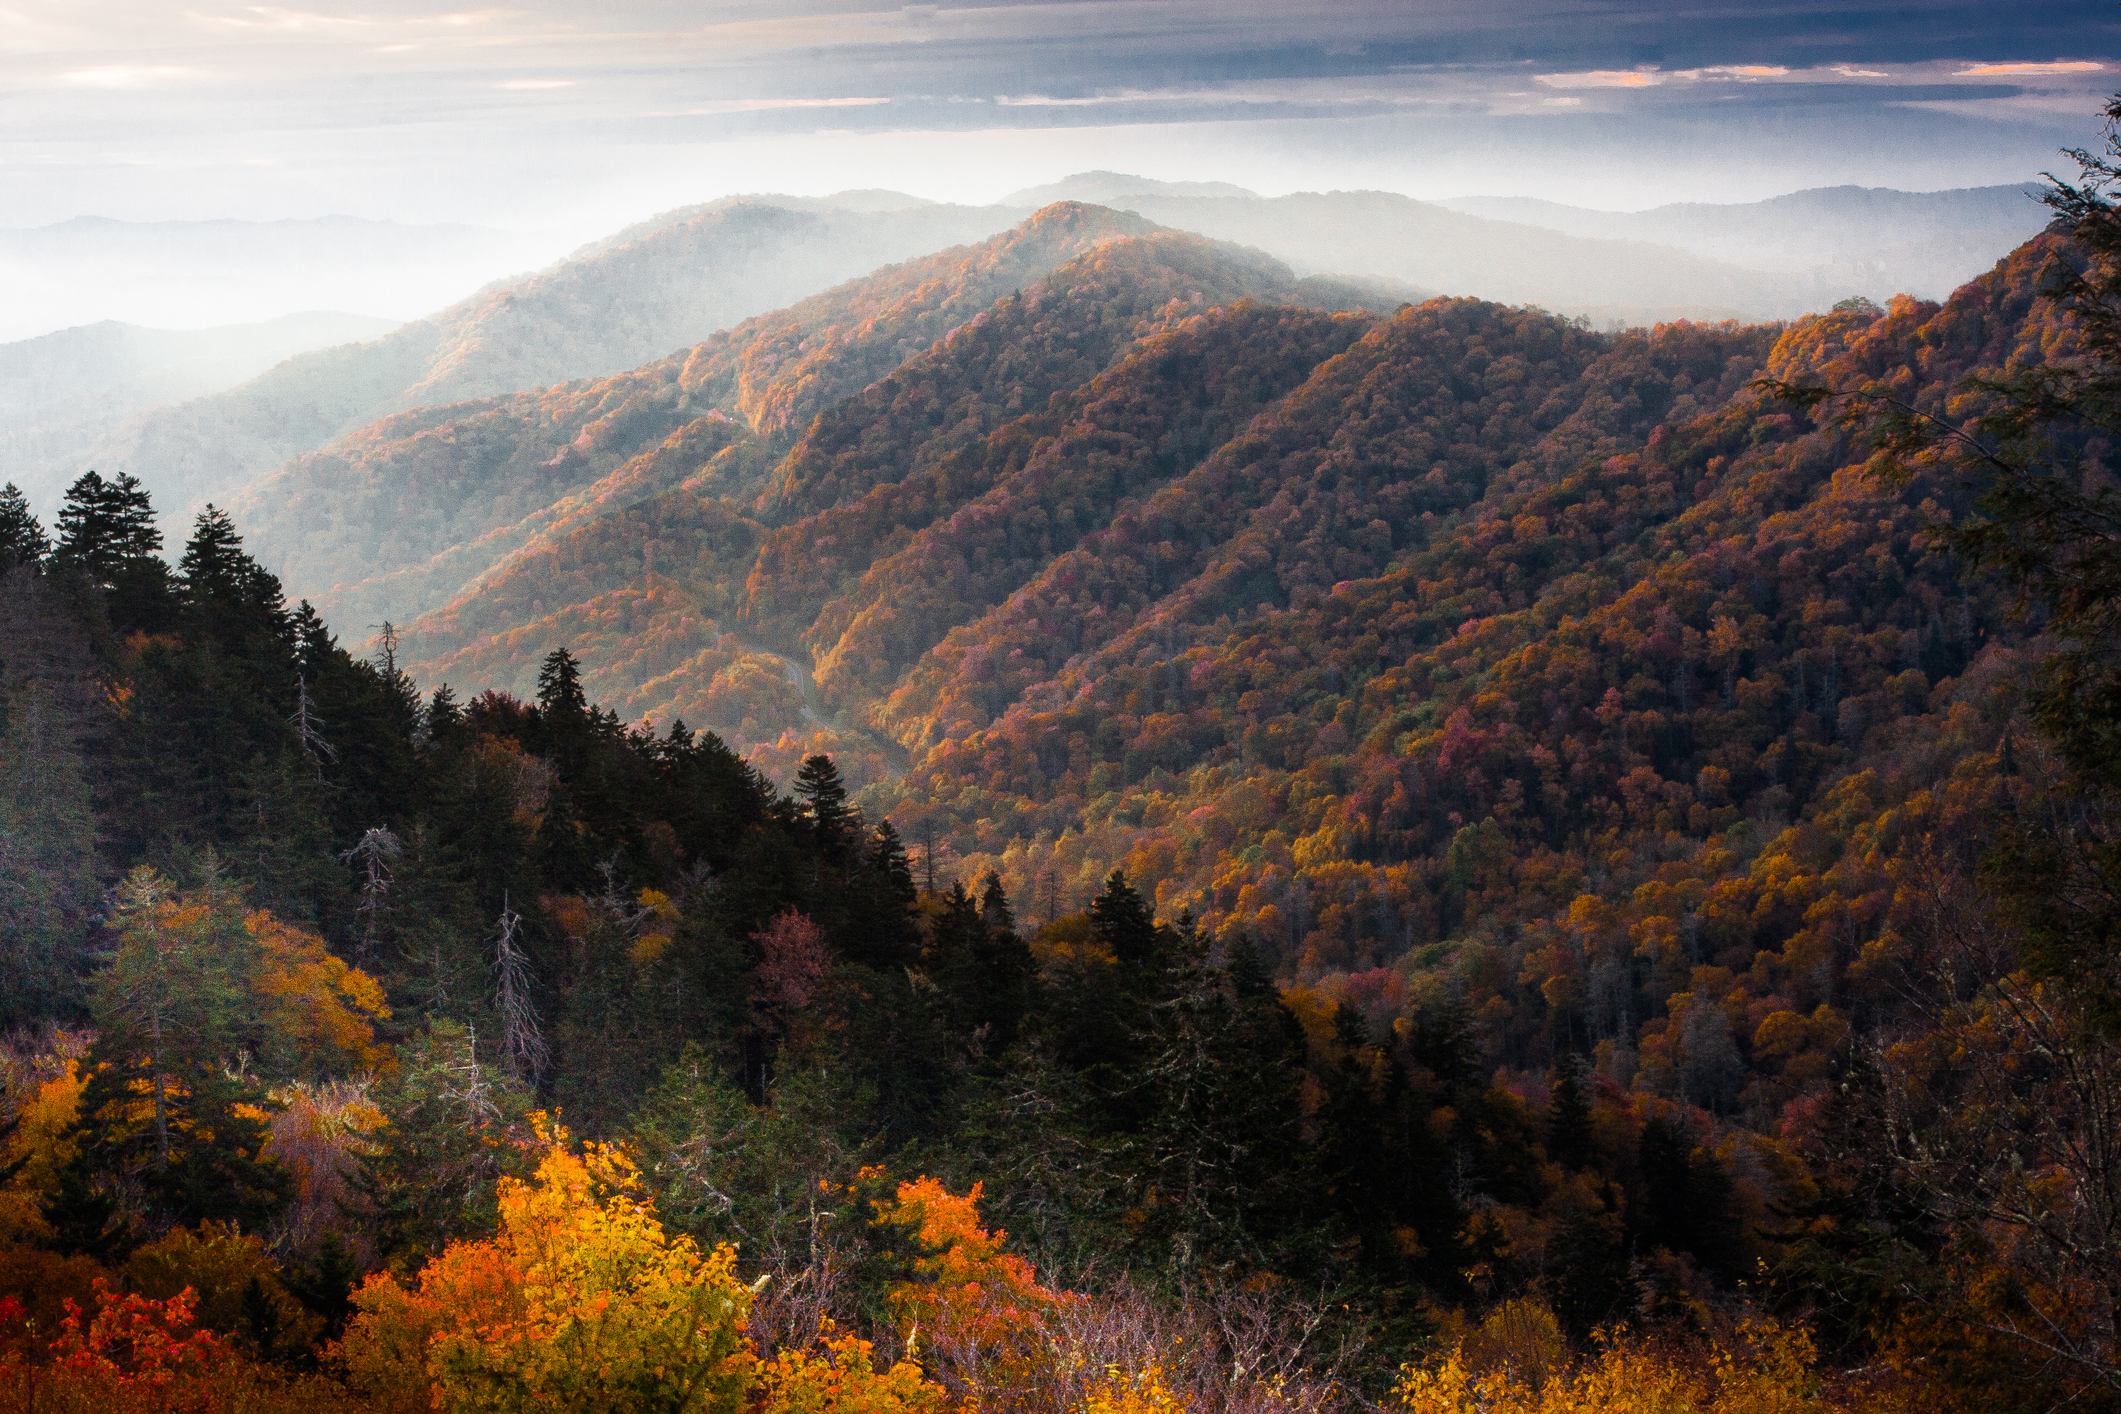 2. Great Smoky Mountains National Park (North Carolina and Tennessee)